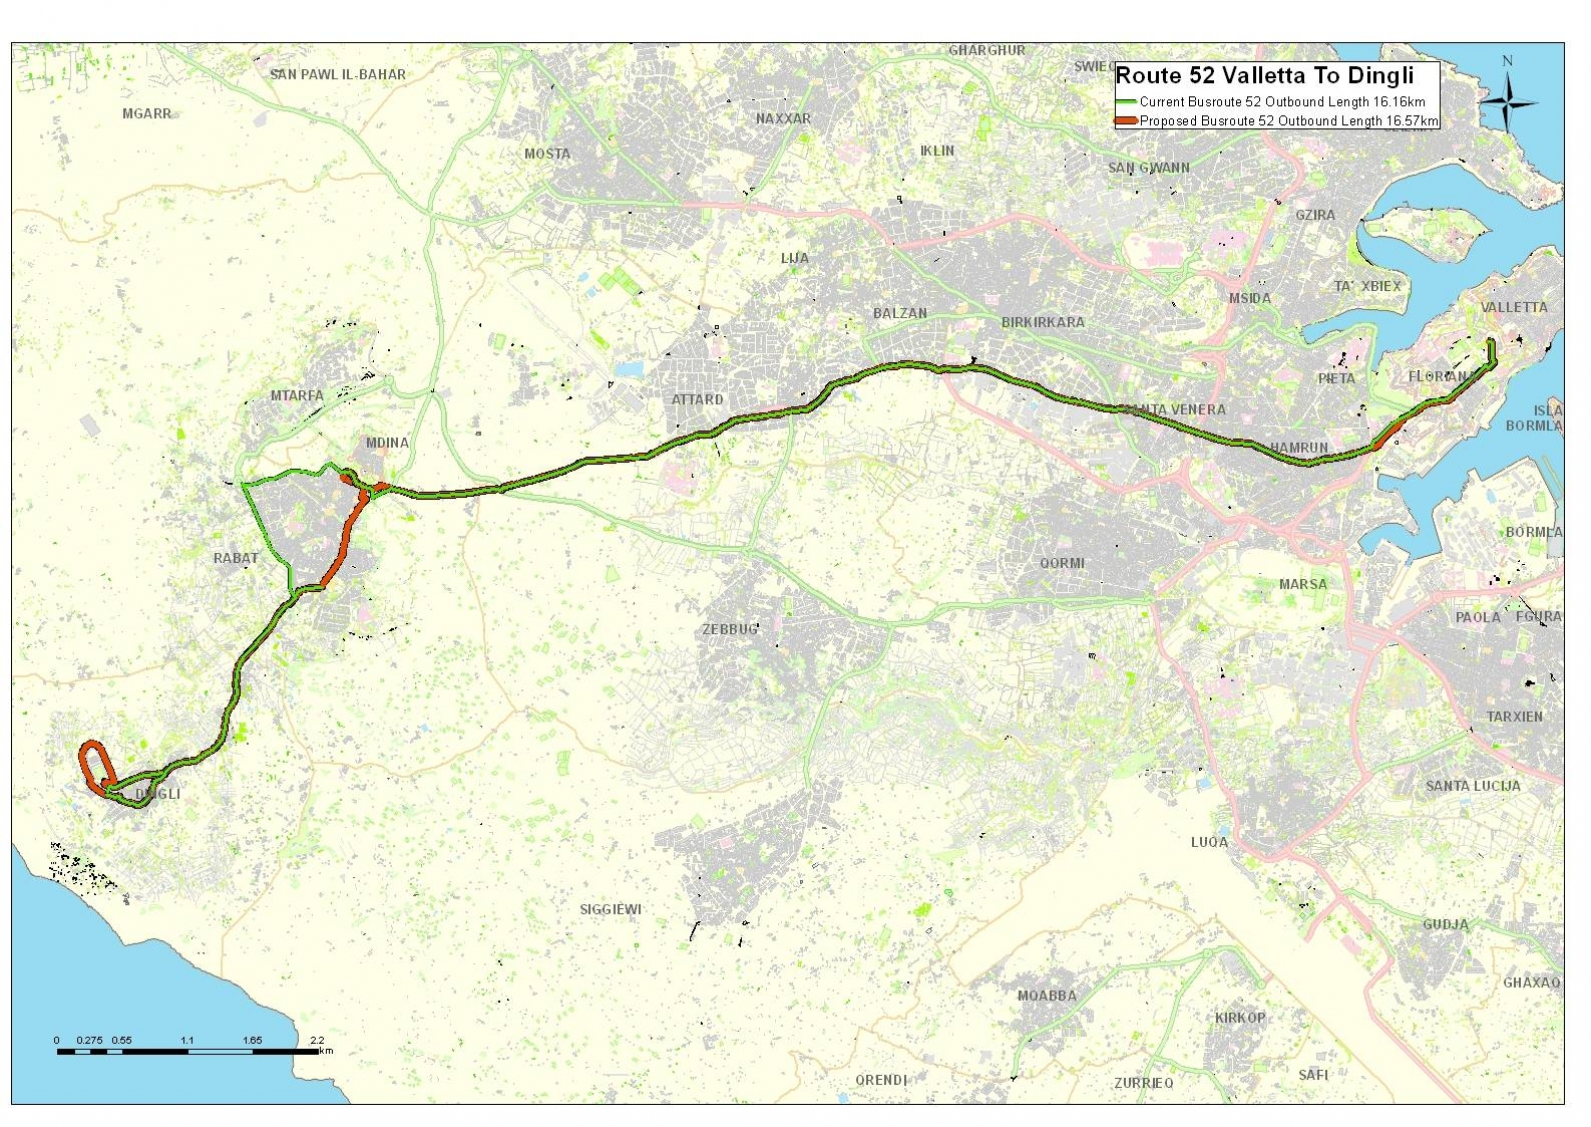 Land-current-network-routes-and-schedules-Dingli-Mtarfa-Rabat-7